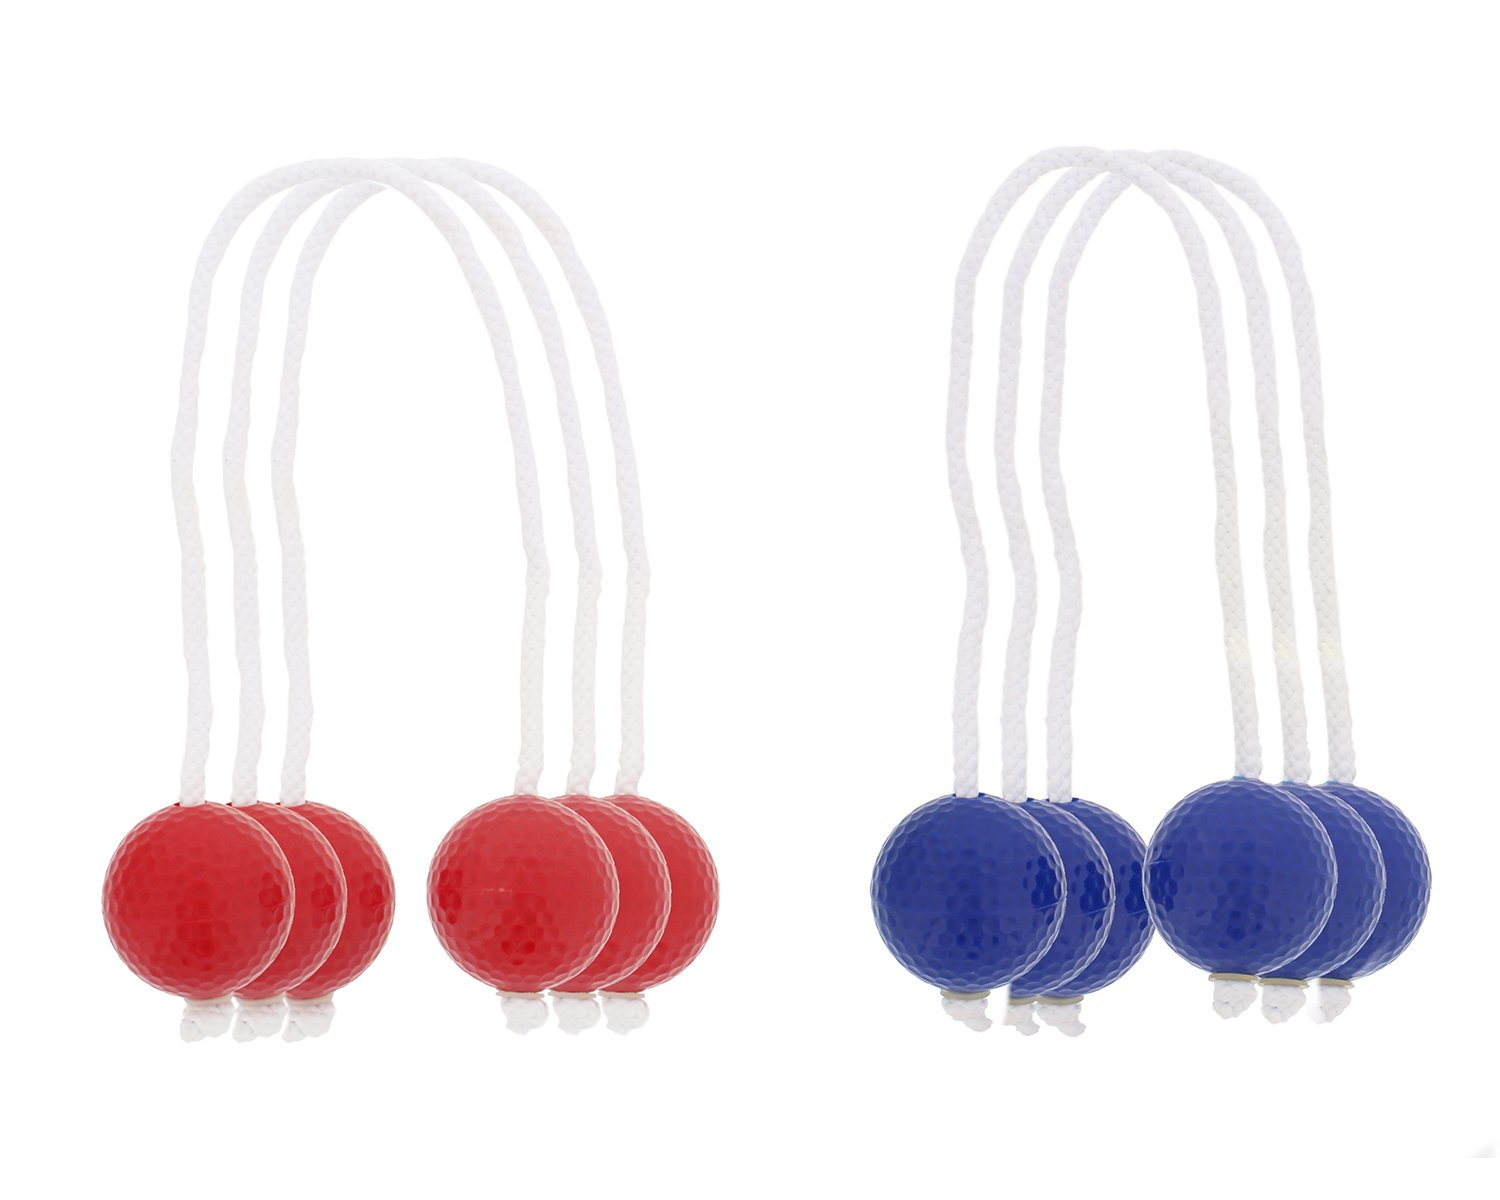 Get Out! Ladder Golf Replacement Bola Strands 6 Pack, 3 Blue 3 Red, Ladder Ball for Backyard Games (Includes 6 Bolas)